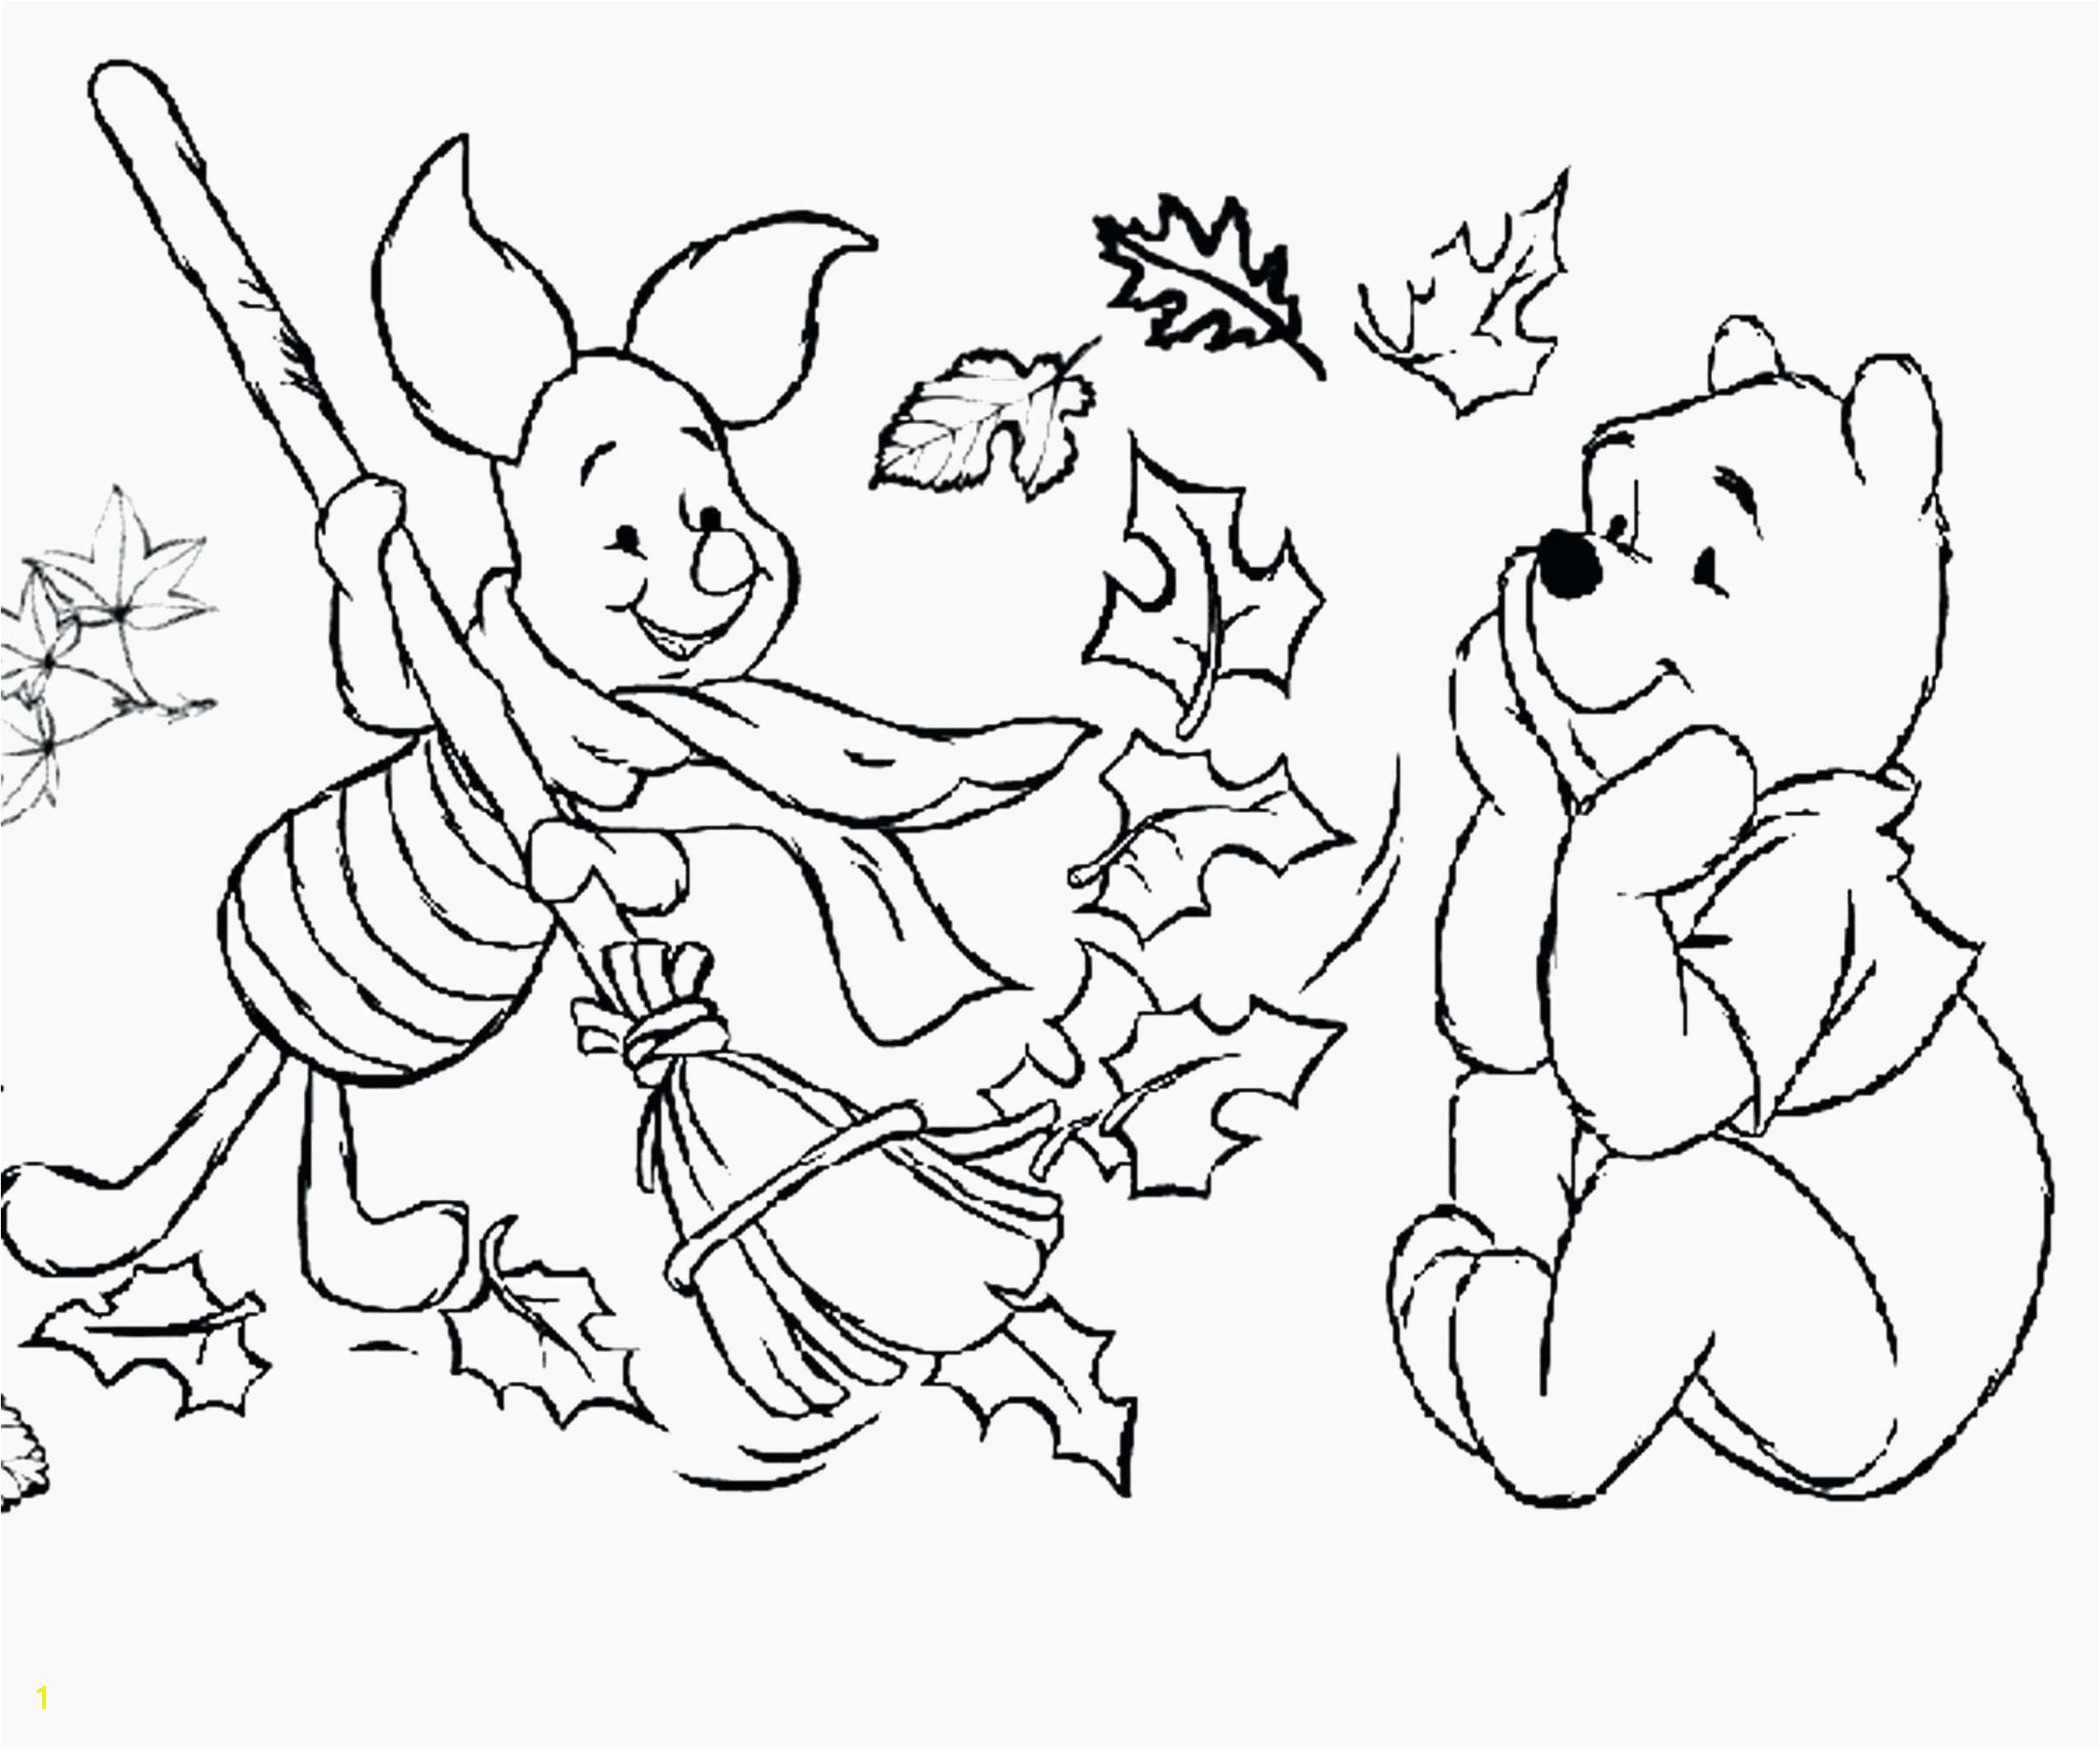 Tigger From Winnie the Pooh Coloring Pages Lovely Winnie Pooh Coloring Pages Winnie the Pooh Christmas